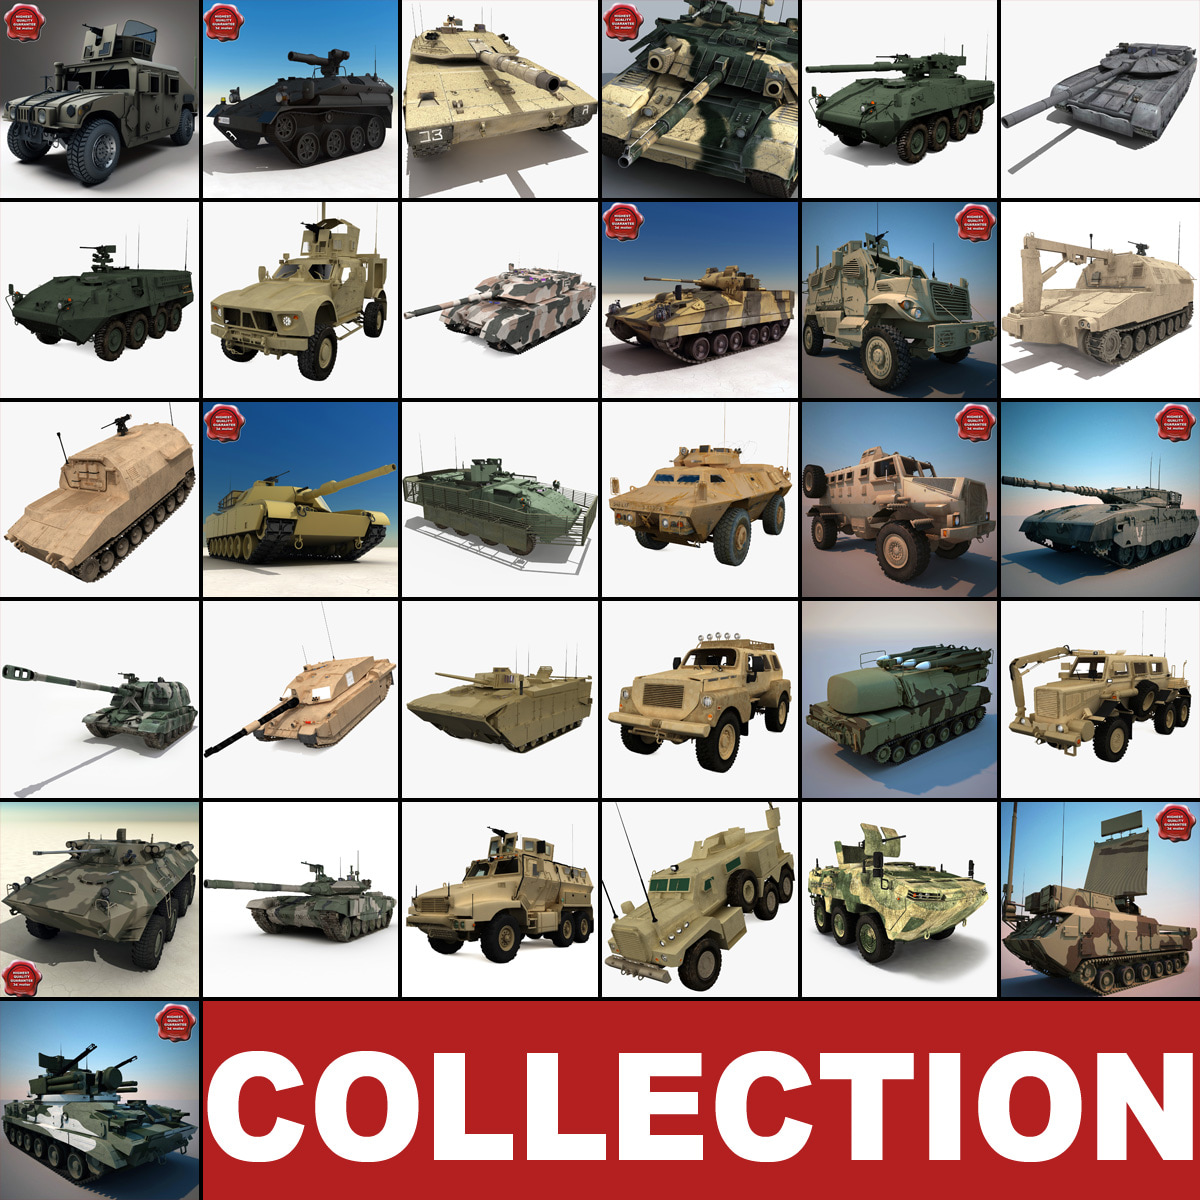 Tanks_Collection_V15_000.jpg